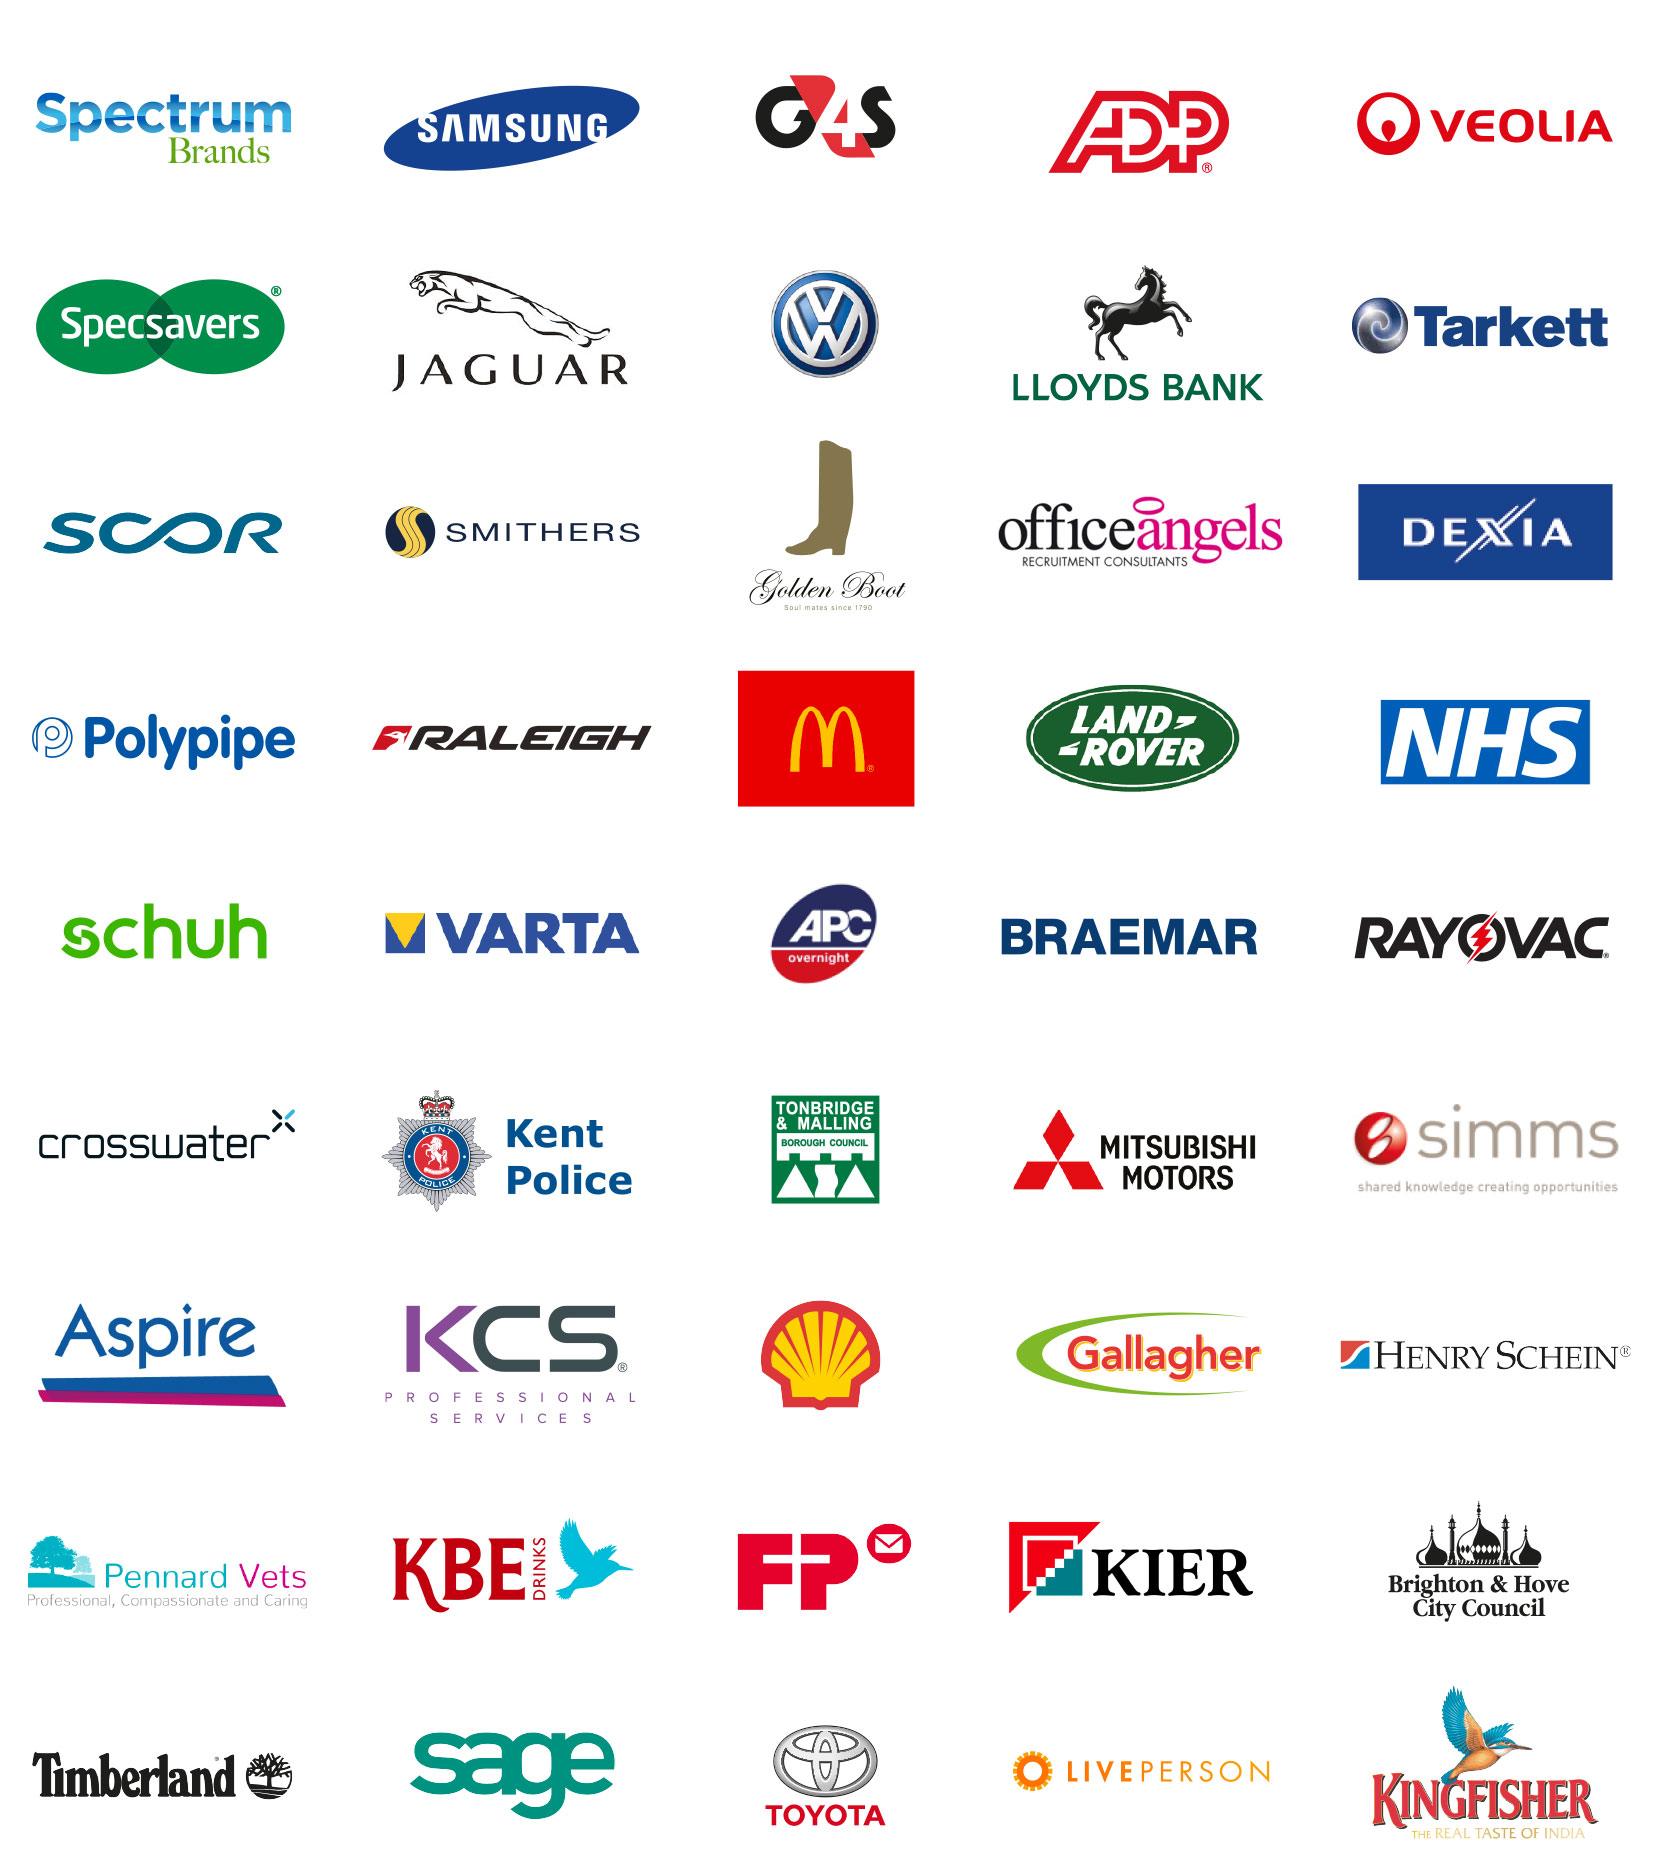 Over 800 happy customers nationwide - Full Creative Agency in Kent